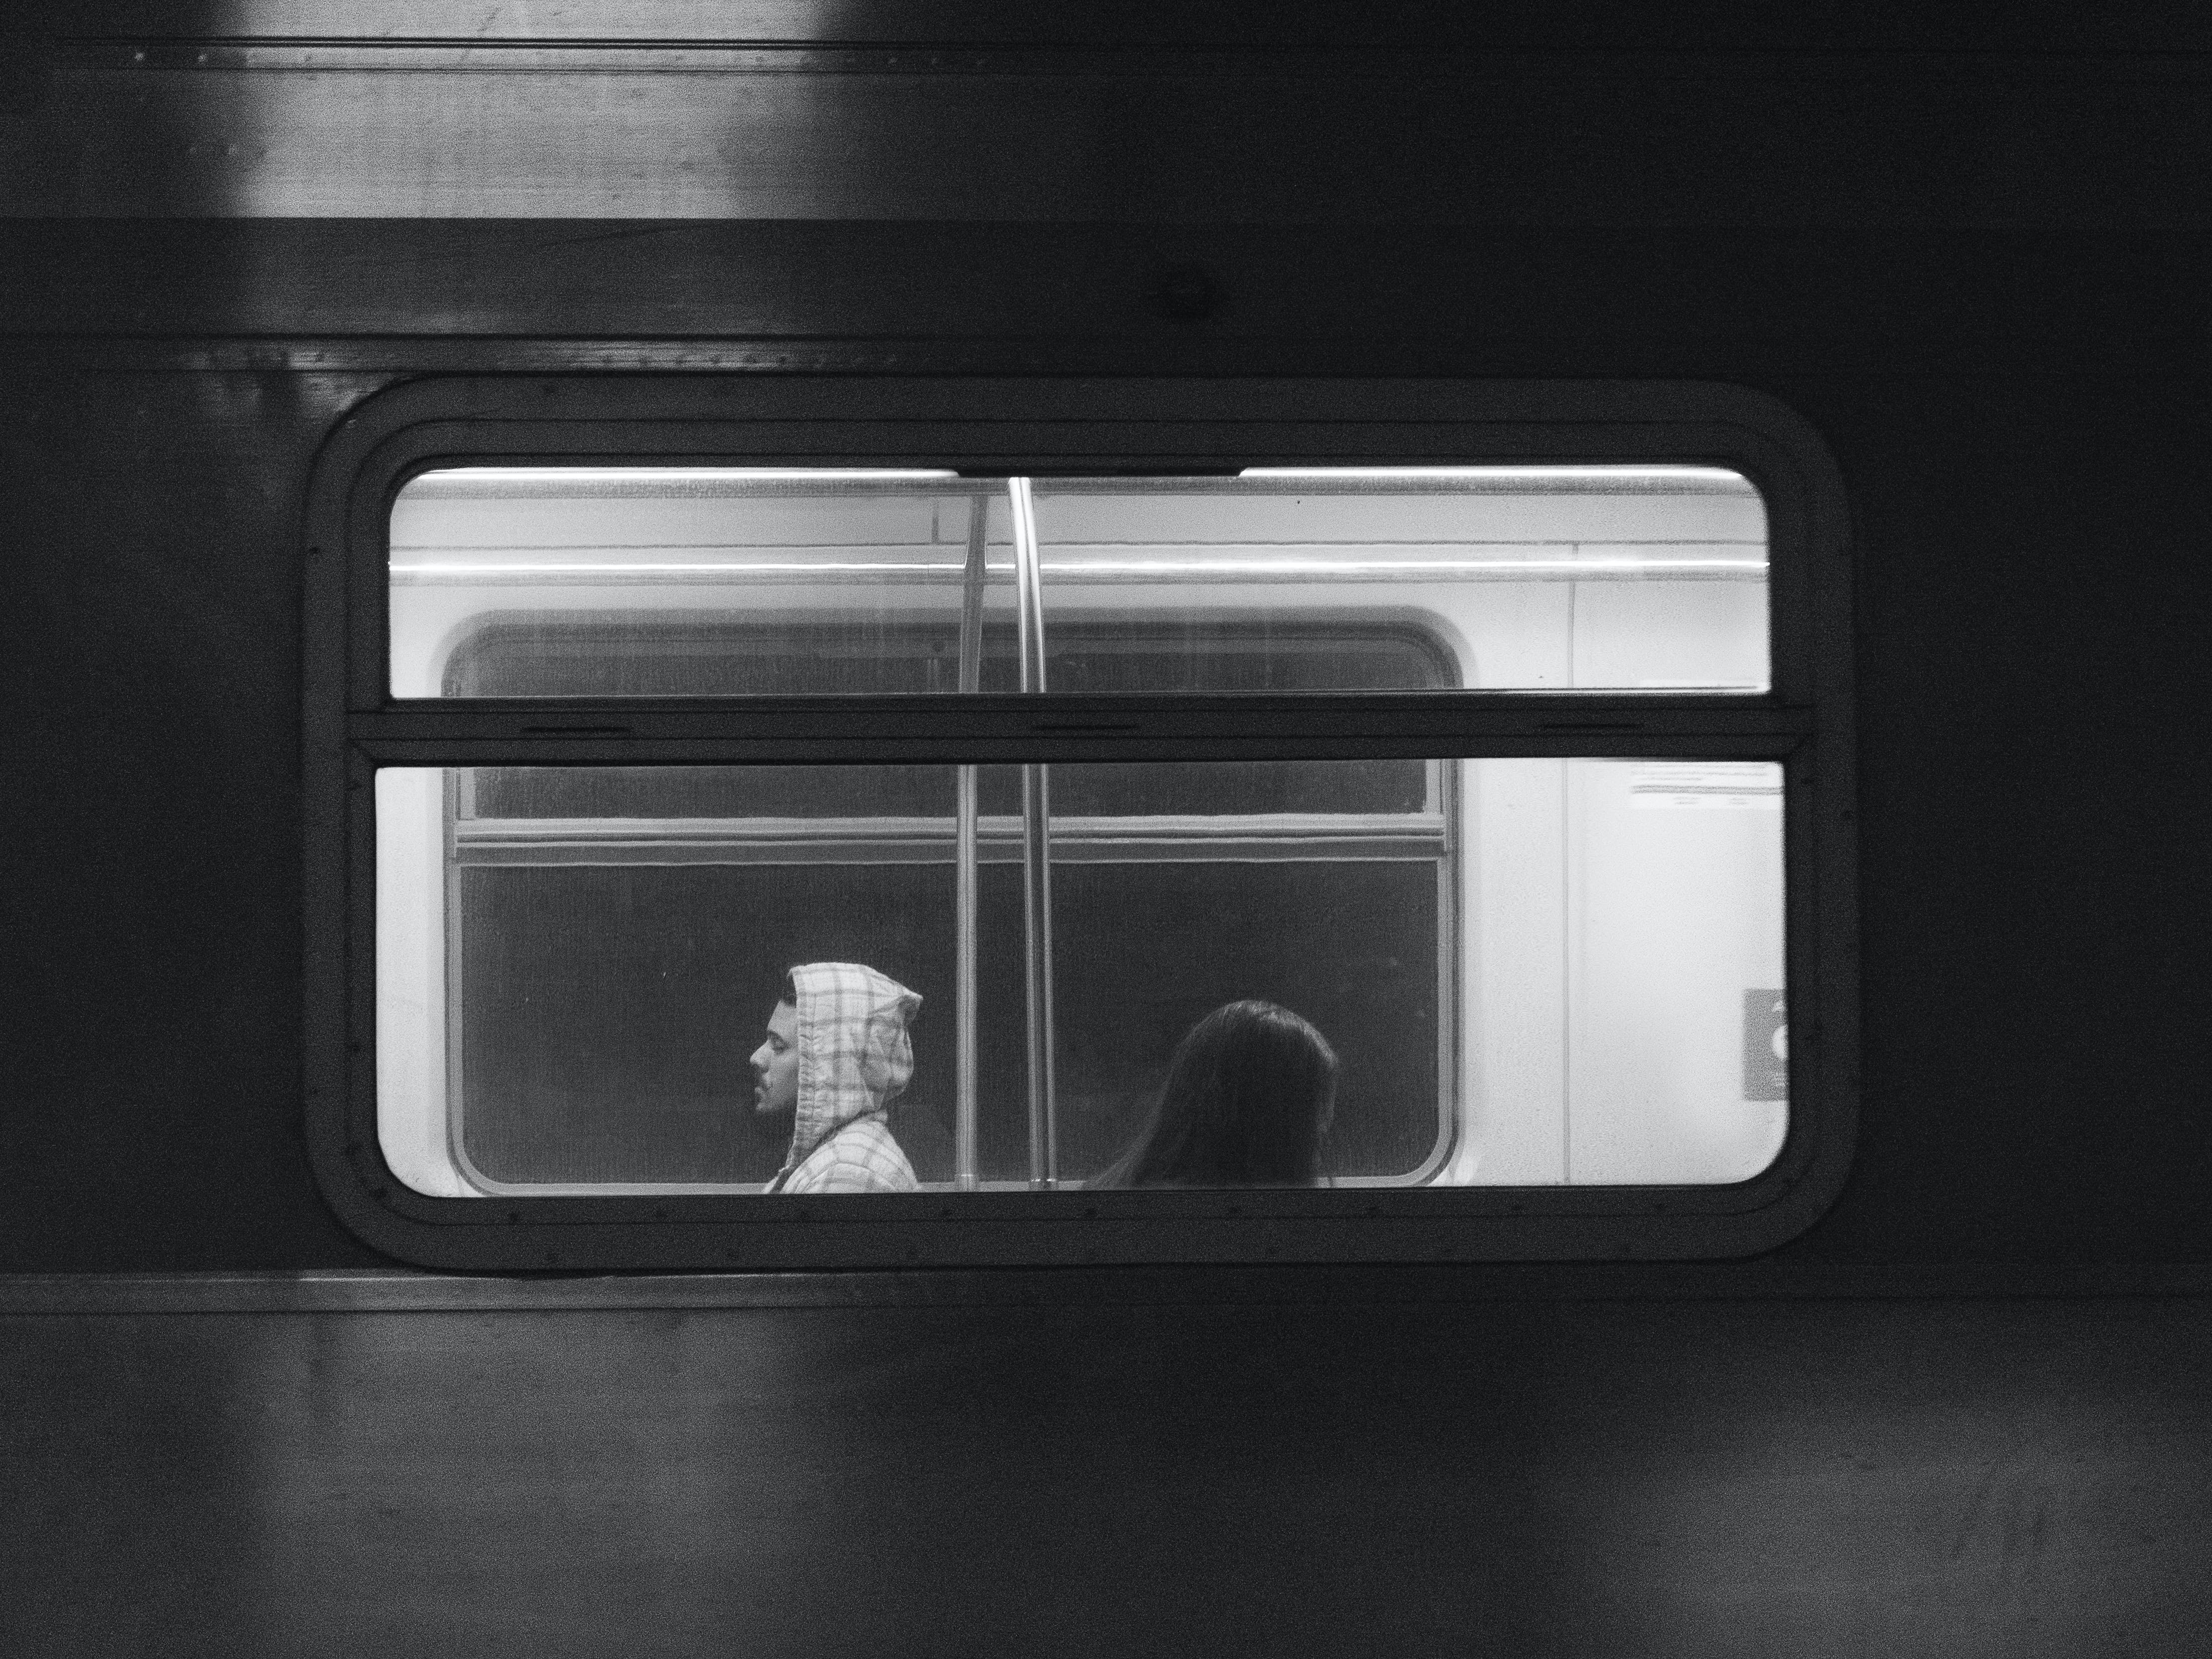 People Riding The Train